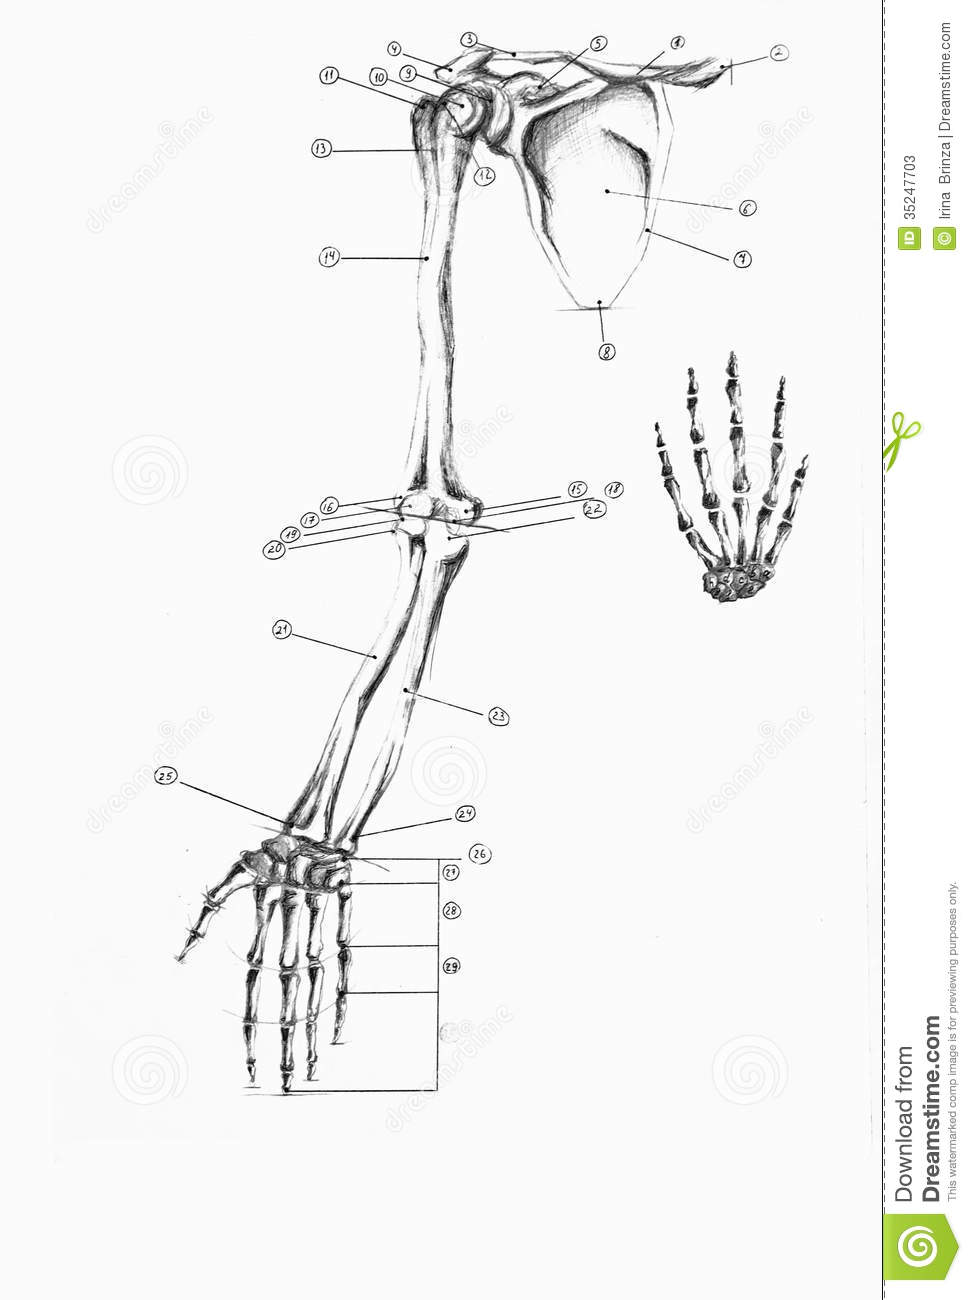 anatomy of human arm and hand stock photos